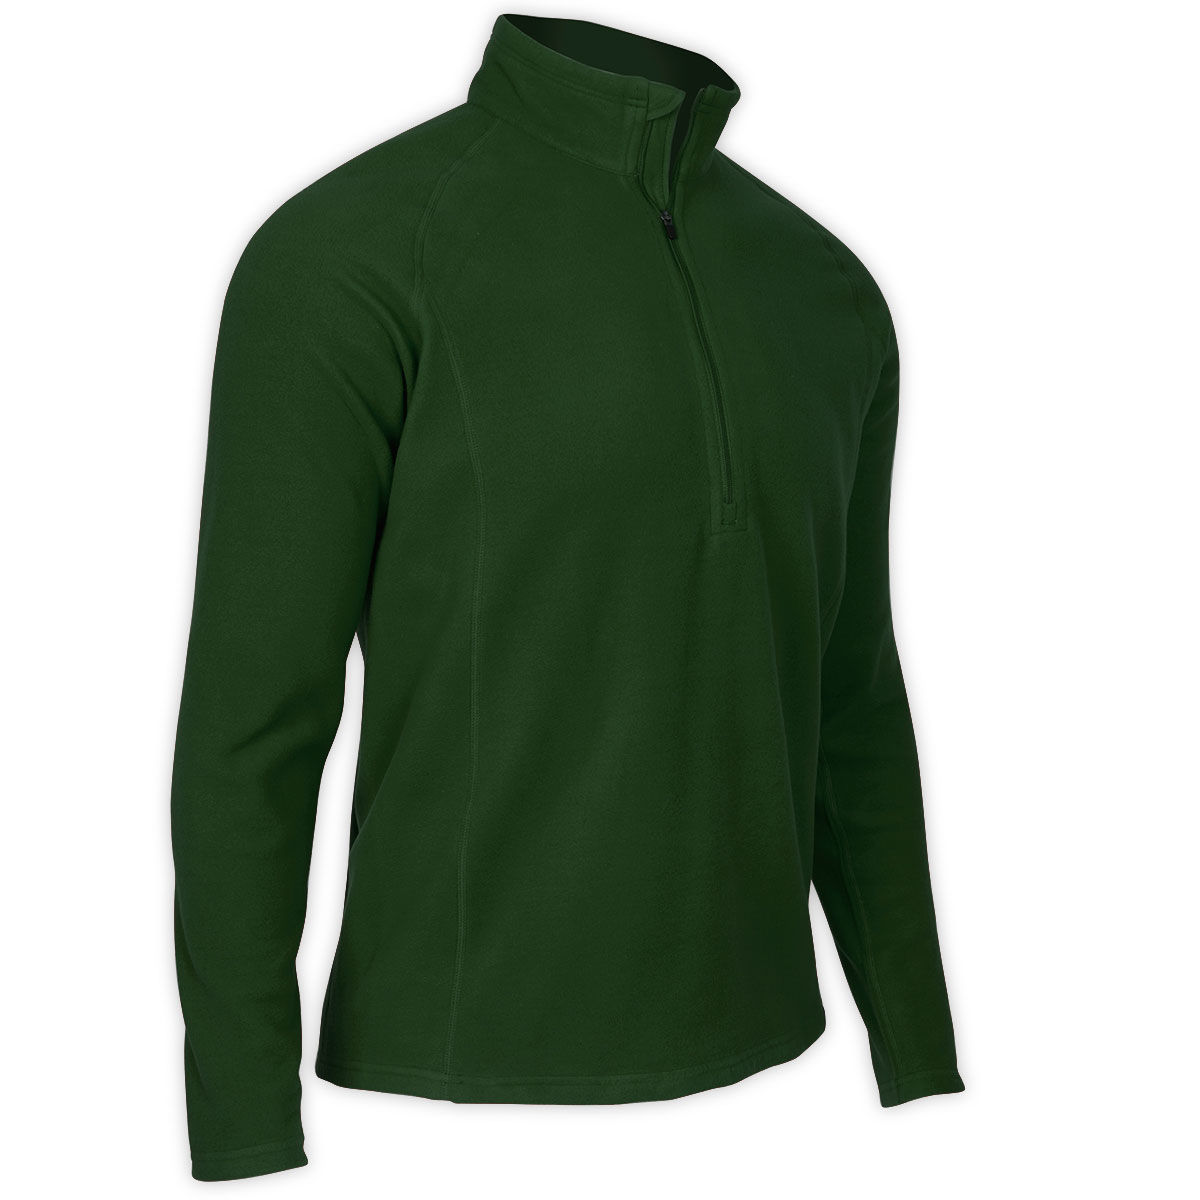 EMS Coldsnap Micro Fleece 1/4 Zip